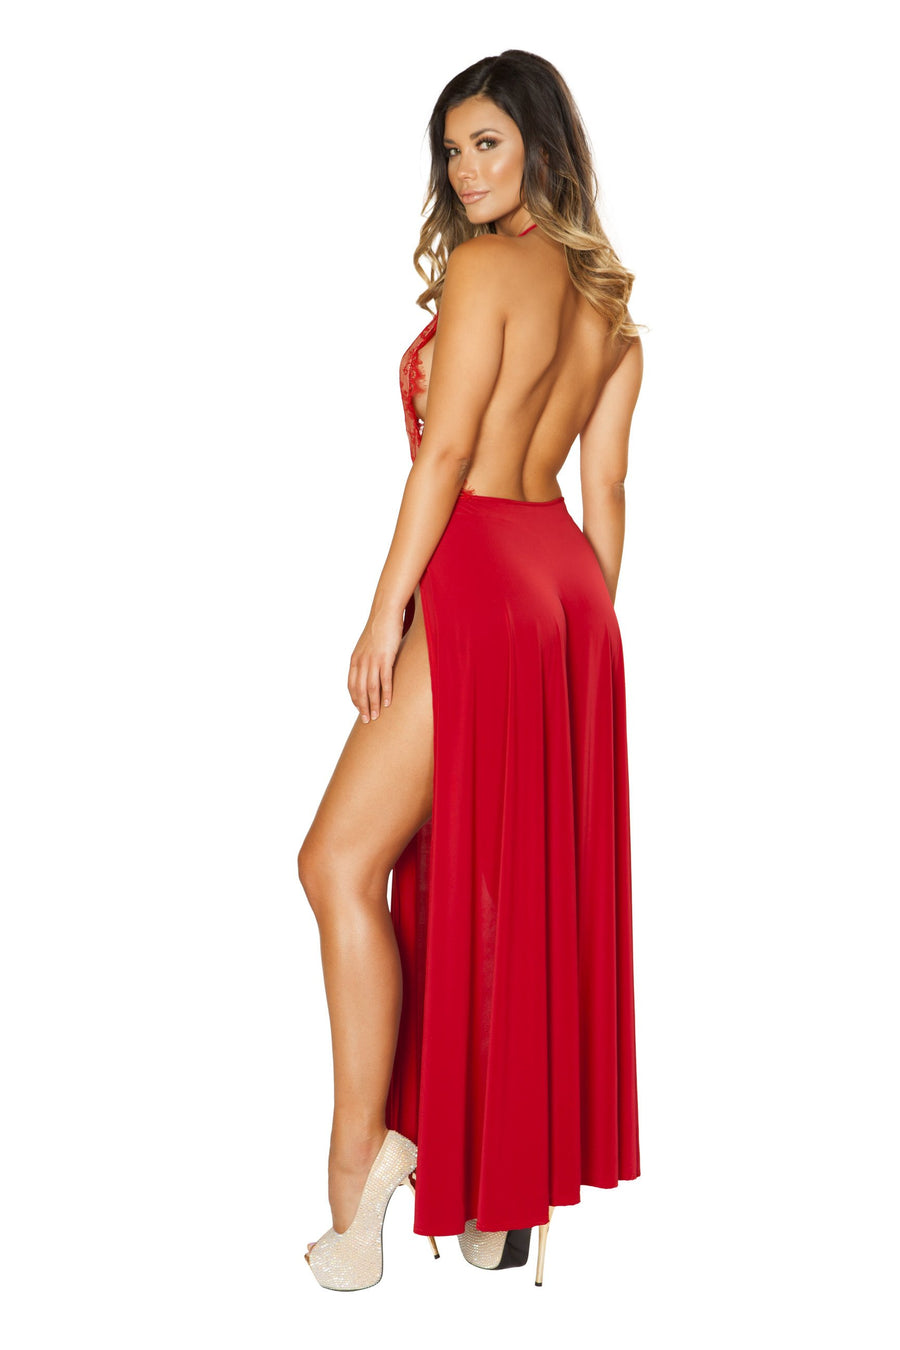 Maxi Length High Slit Dress - Dresses, Roma - YourLamode